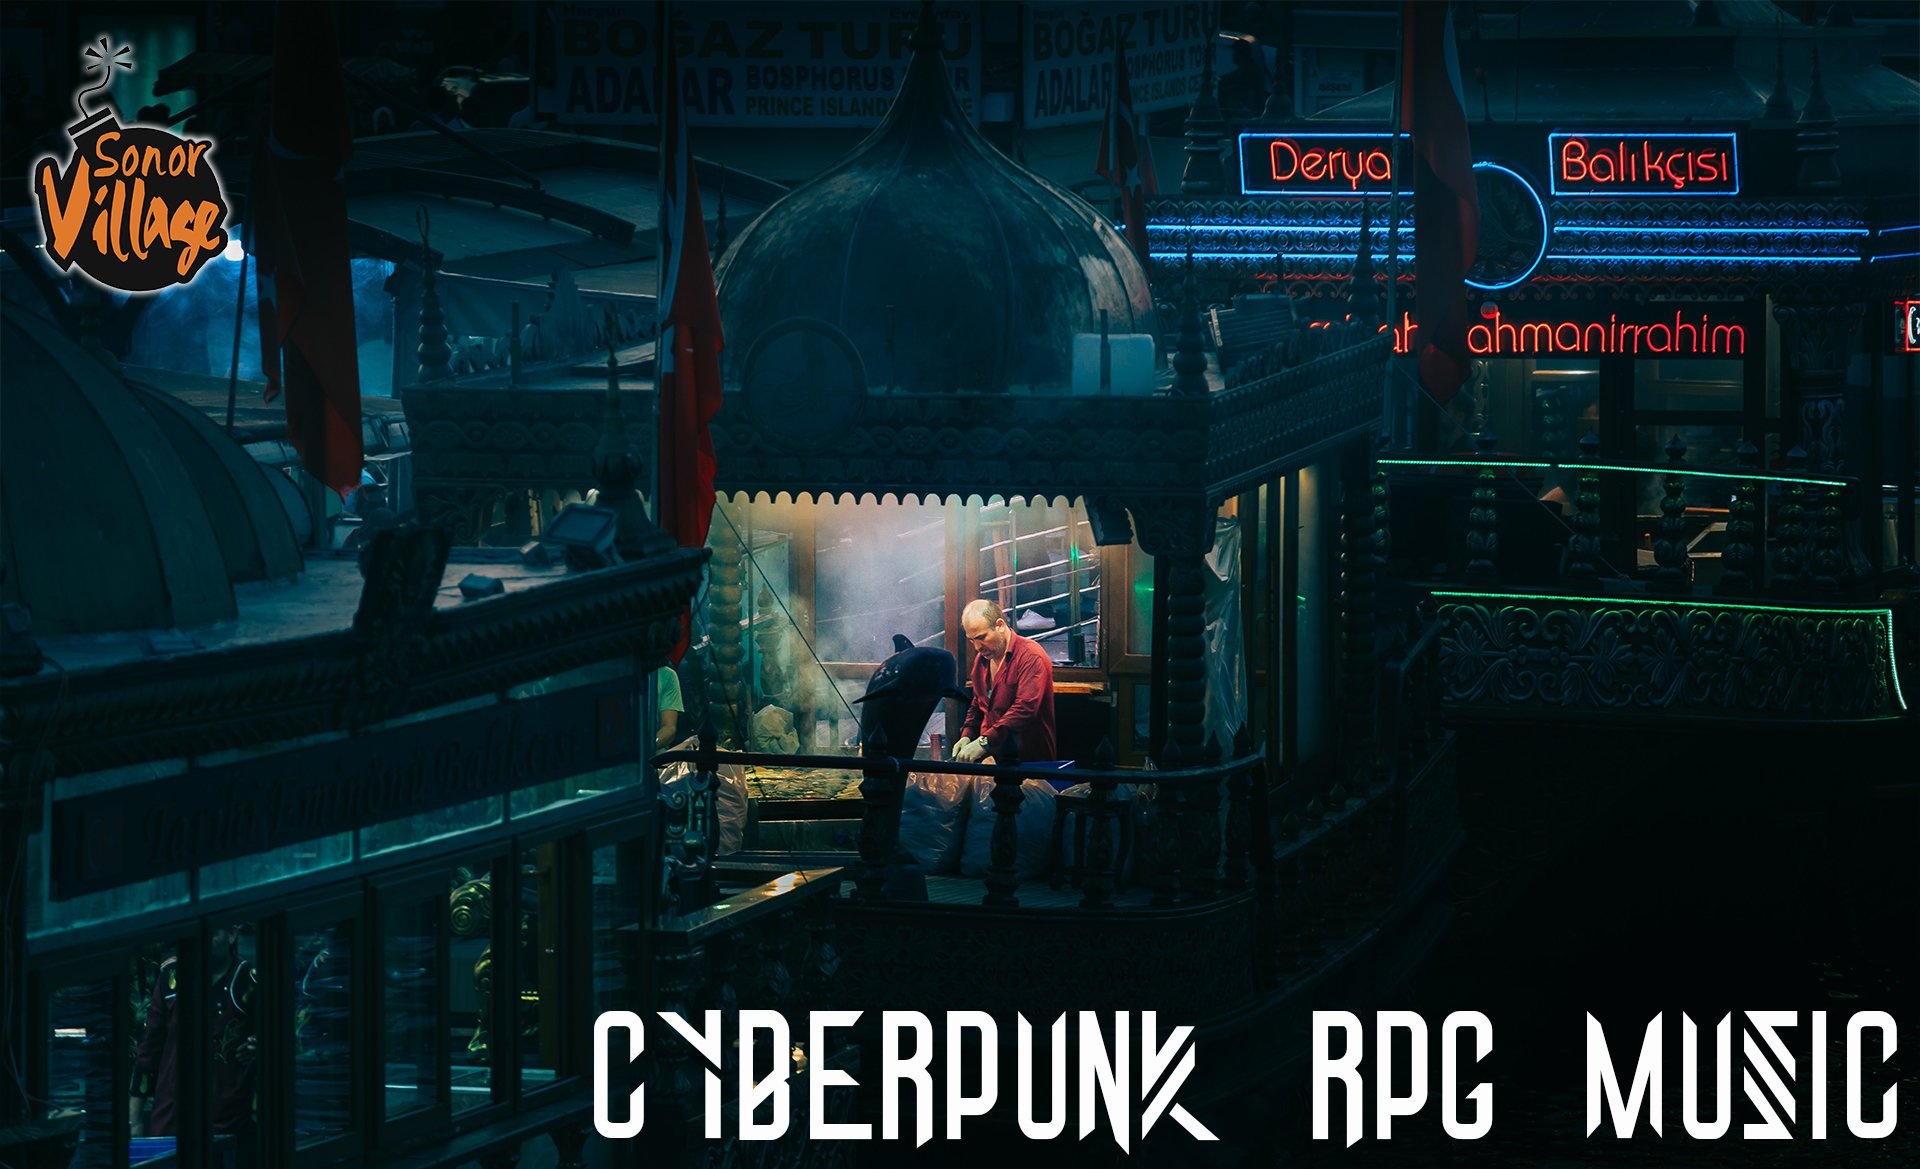 Cyberpunk RPG Music